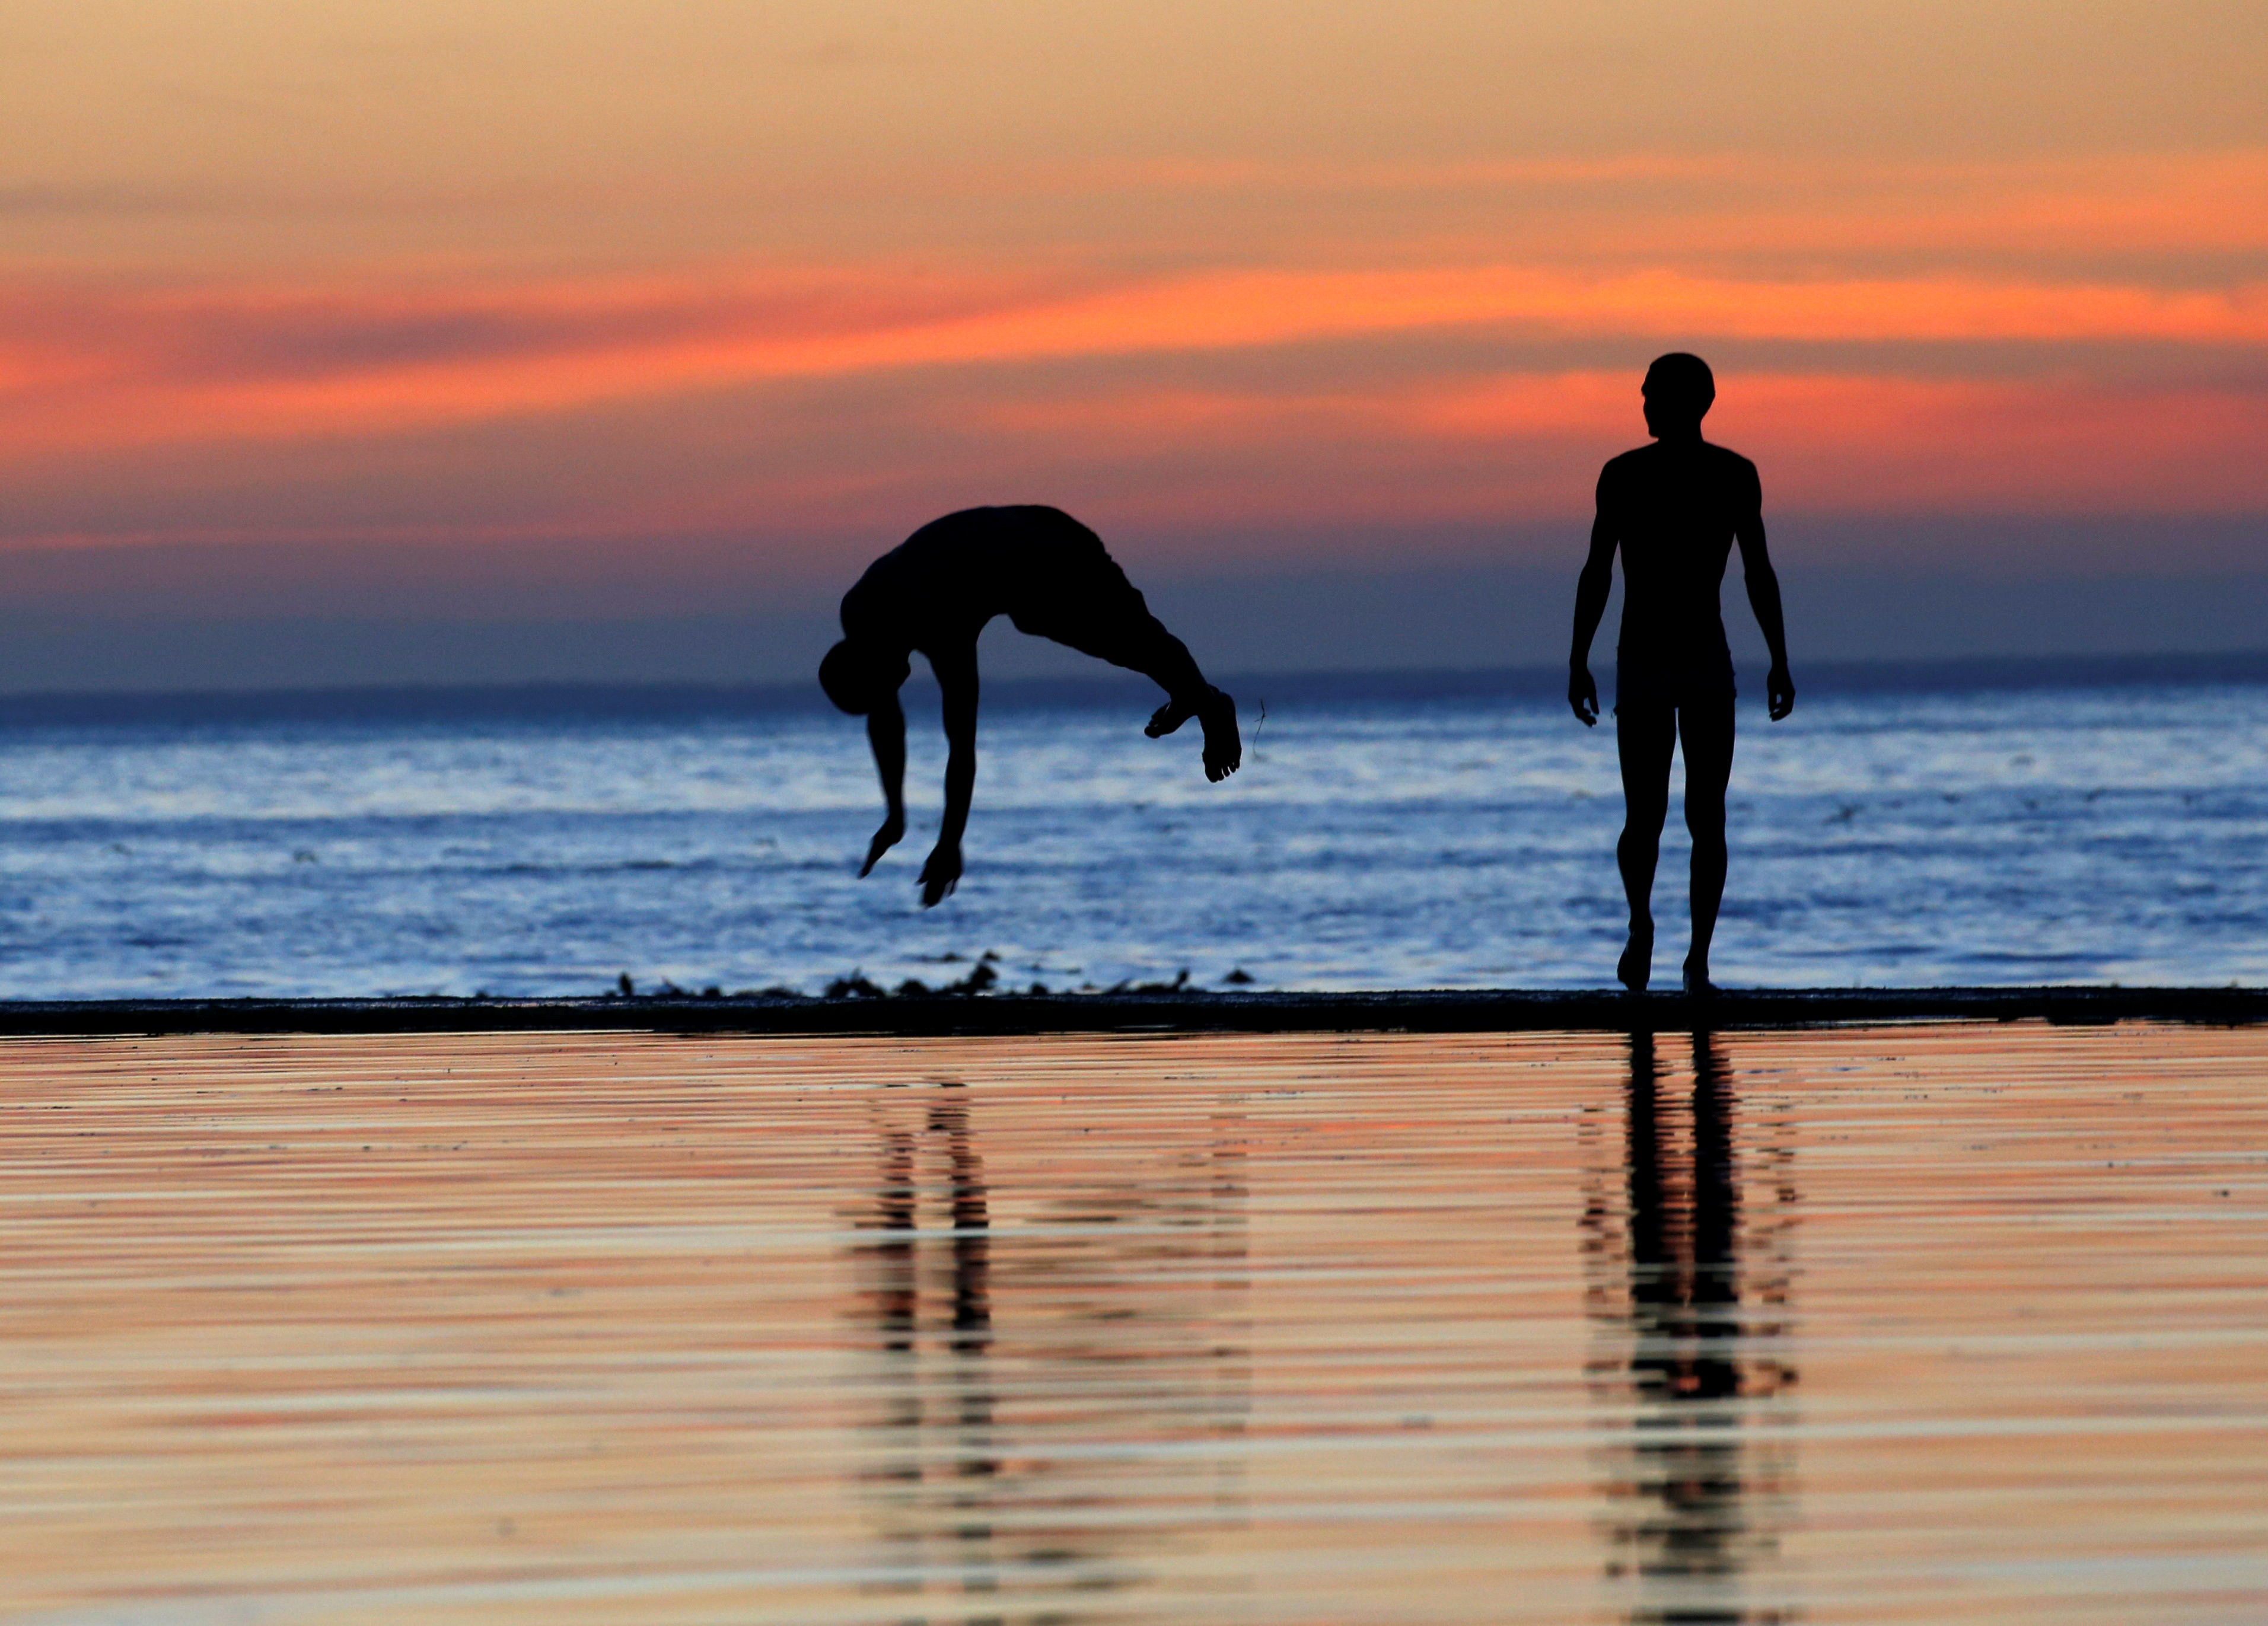 Youths dive into a tidal pool as temperatures soar at Camps Bay beach in Cape Town, South Africa, December 11, 2016.   REUTERS/Mike Hutchings - RC141A86A530